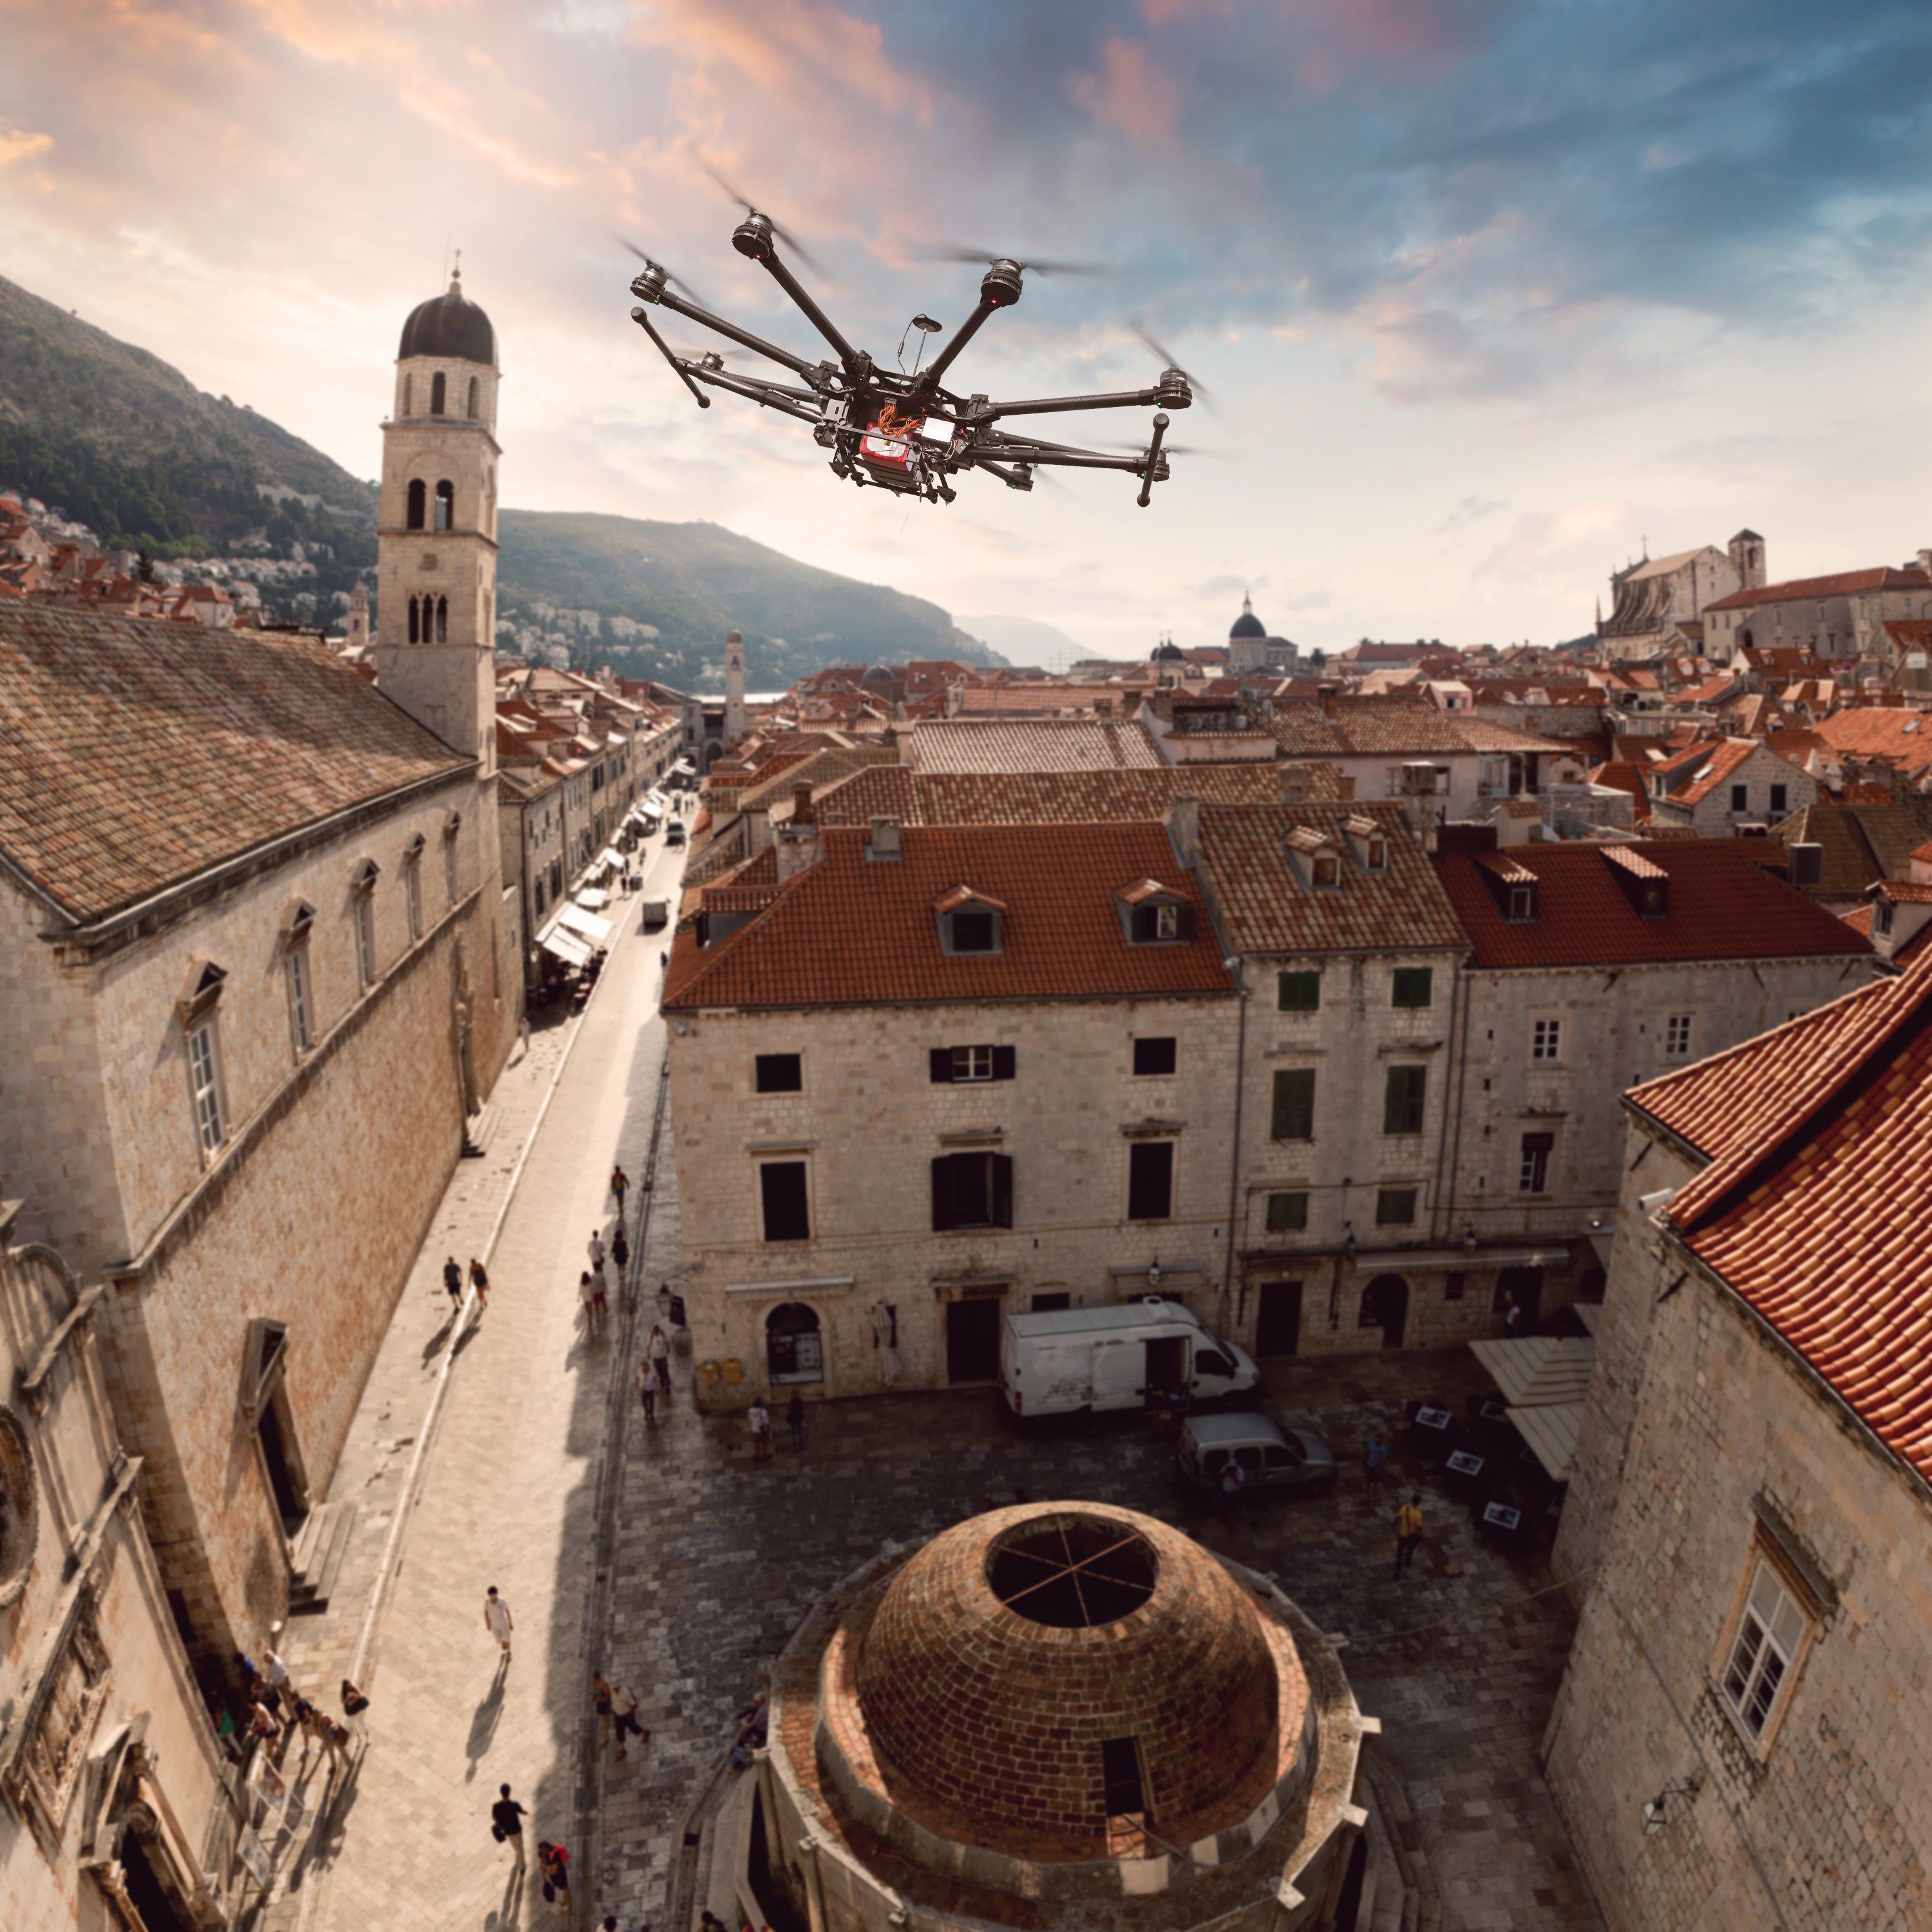 European Cockpit Association Eca: Joint Call To Safely Integrate Drones Into Europe's